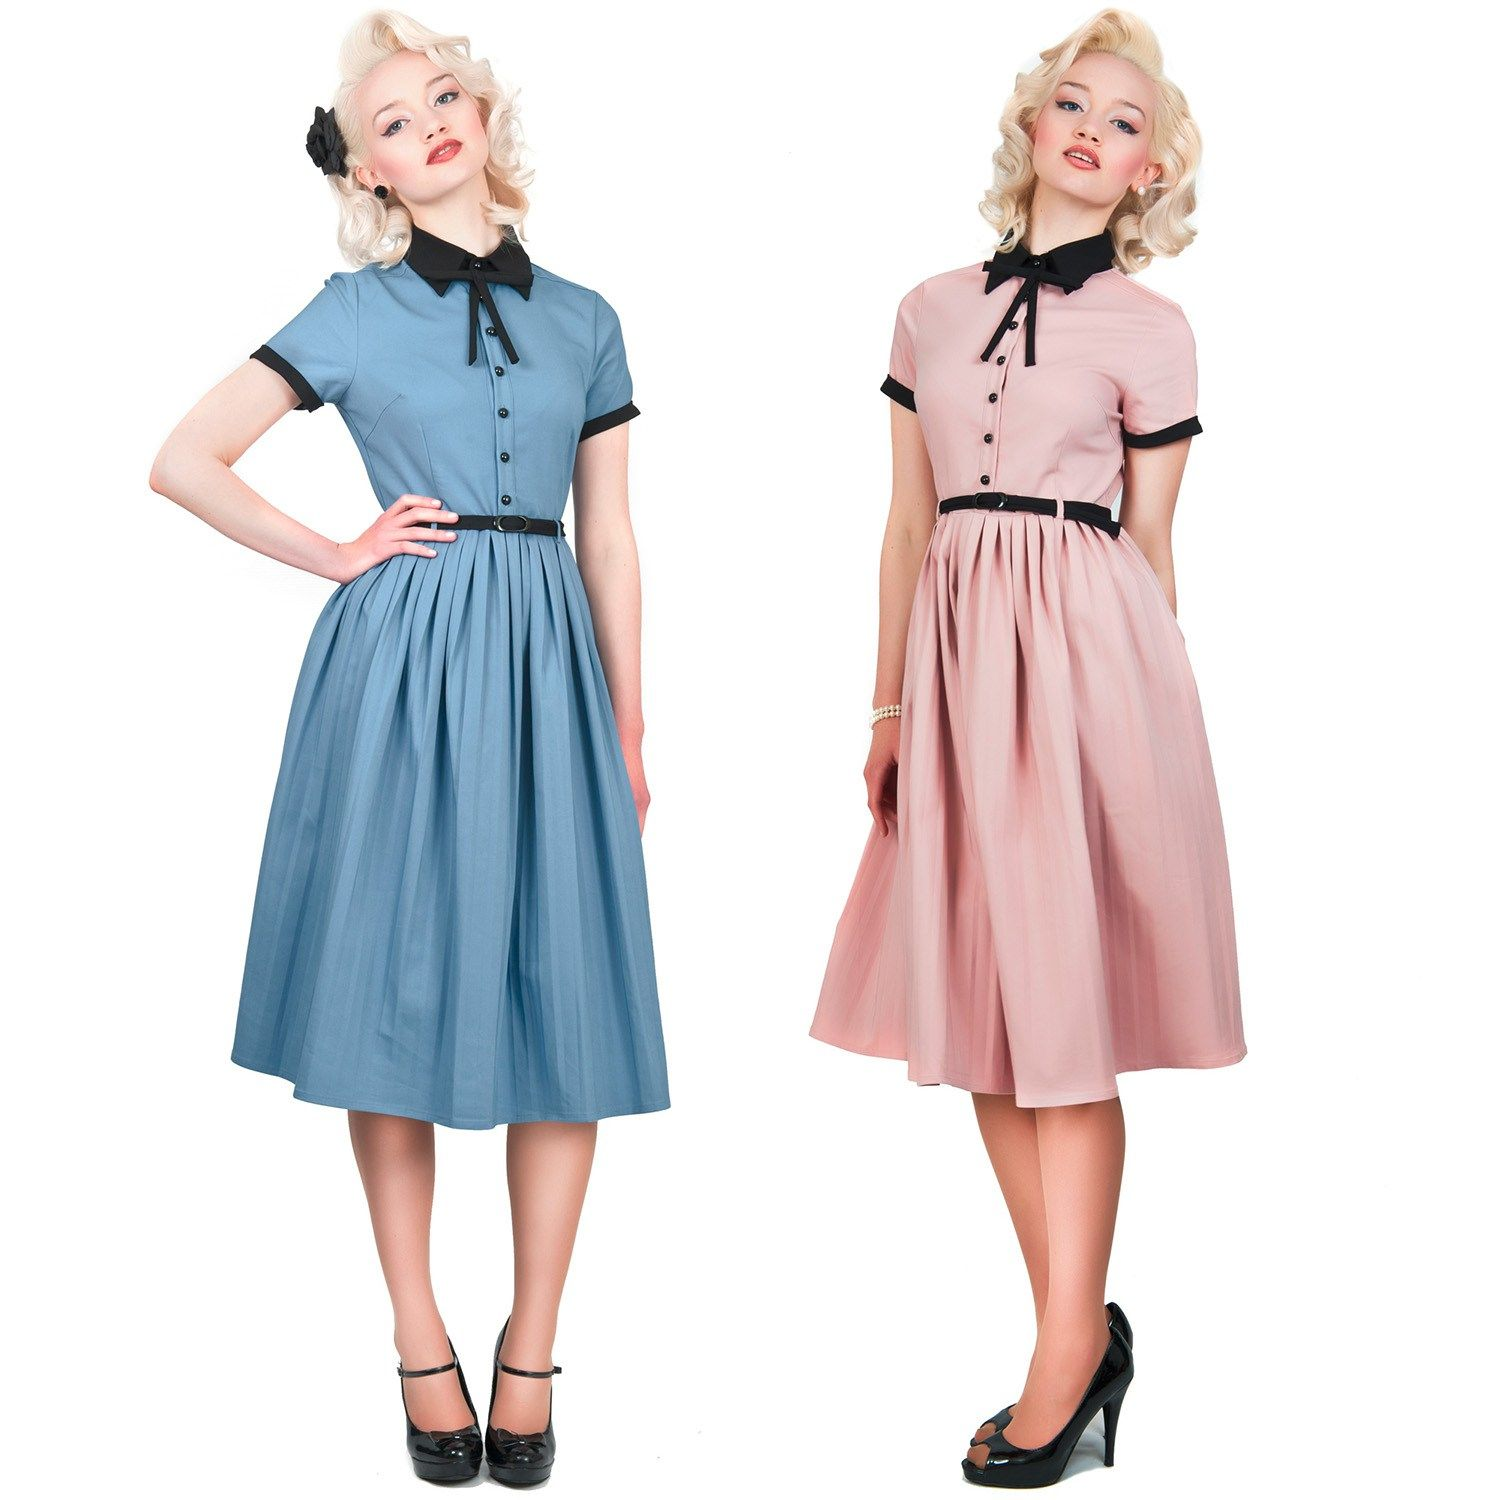 2b083fa1e42c 50S Vintage Clothing | Beauty Clothes. scpxt.com | vintage and ...